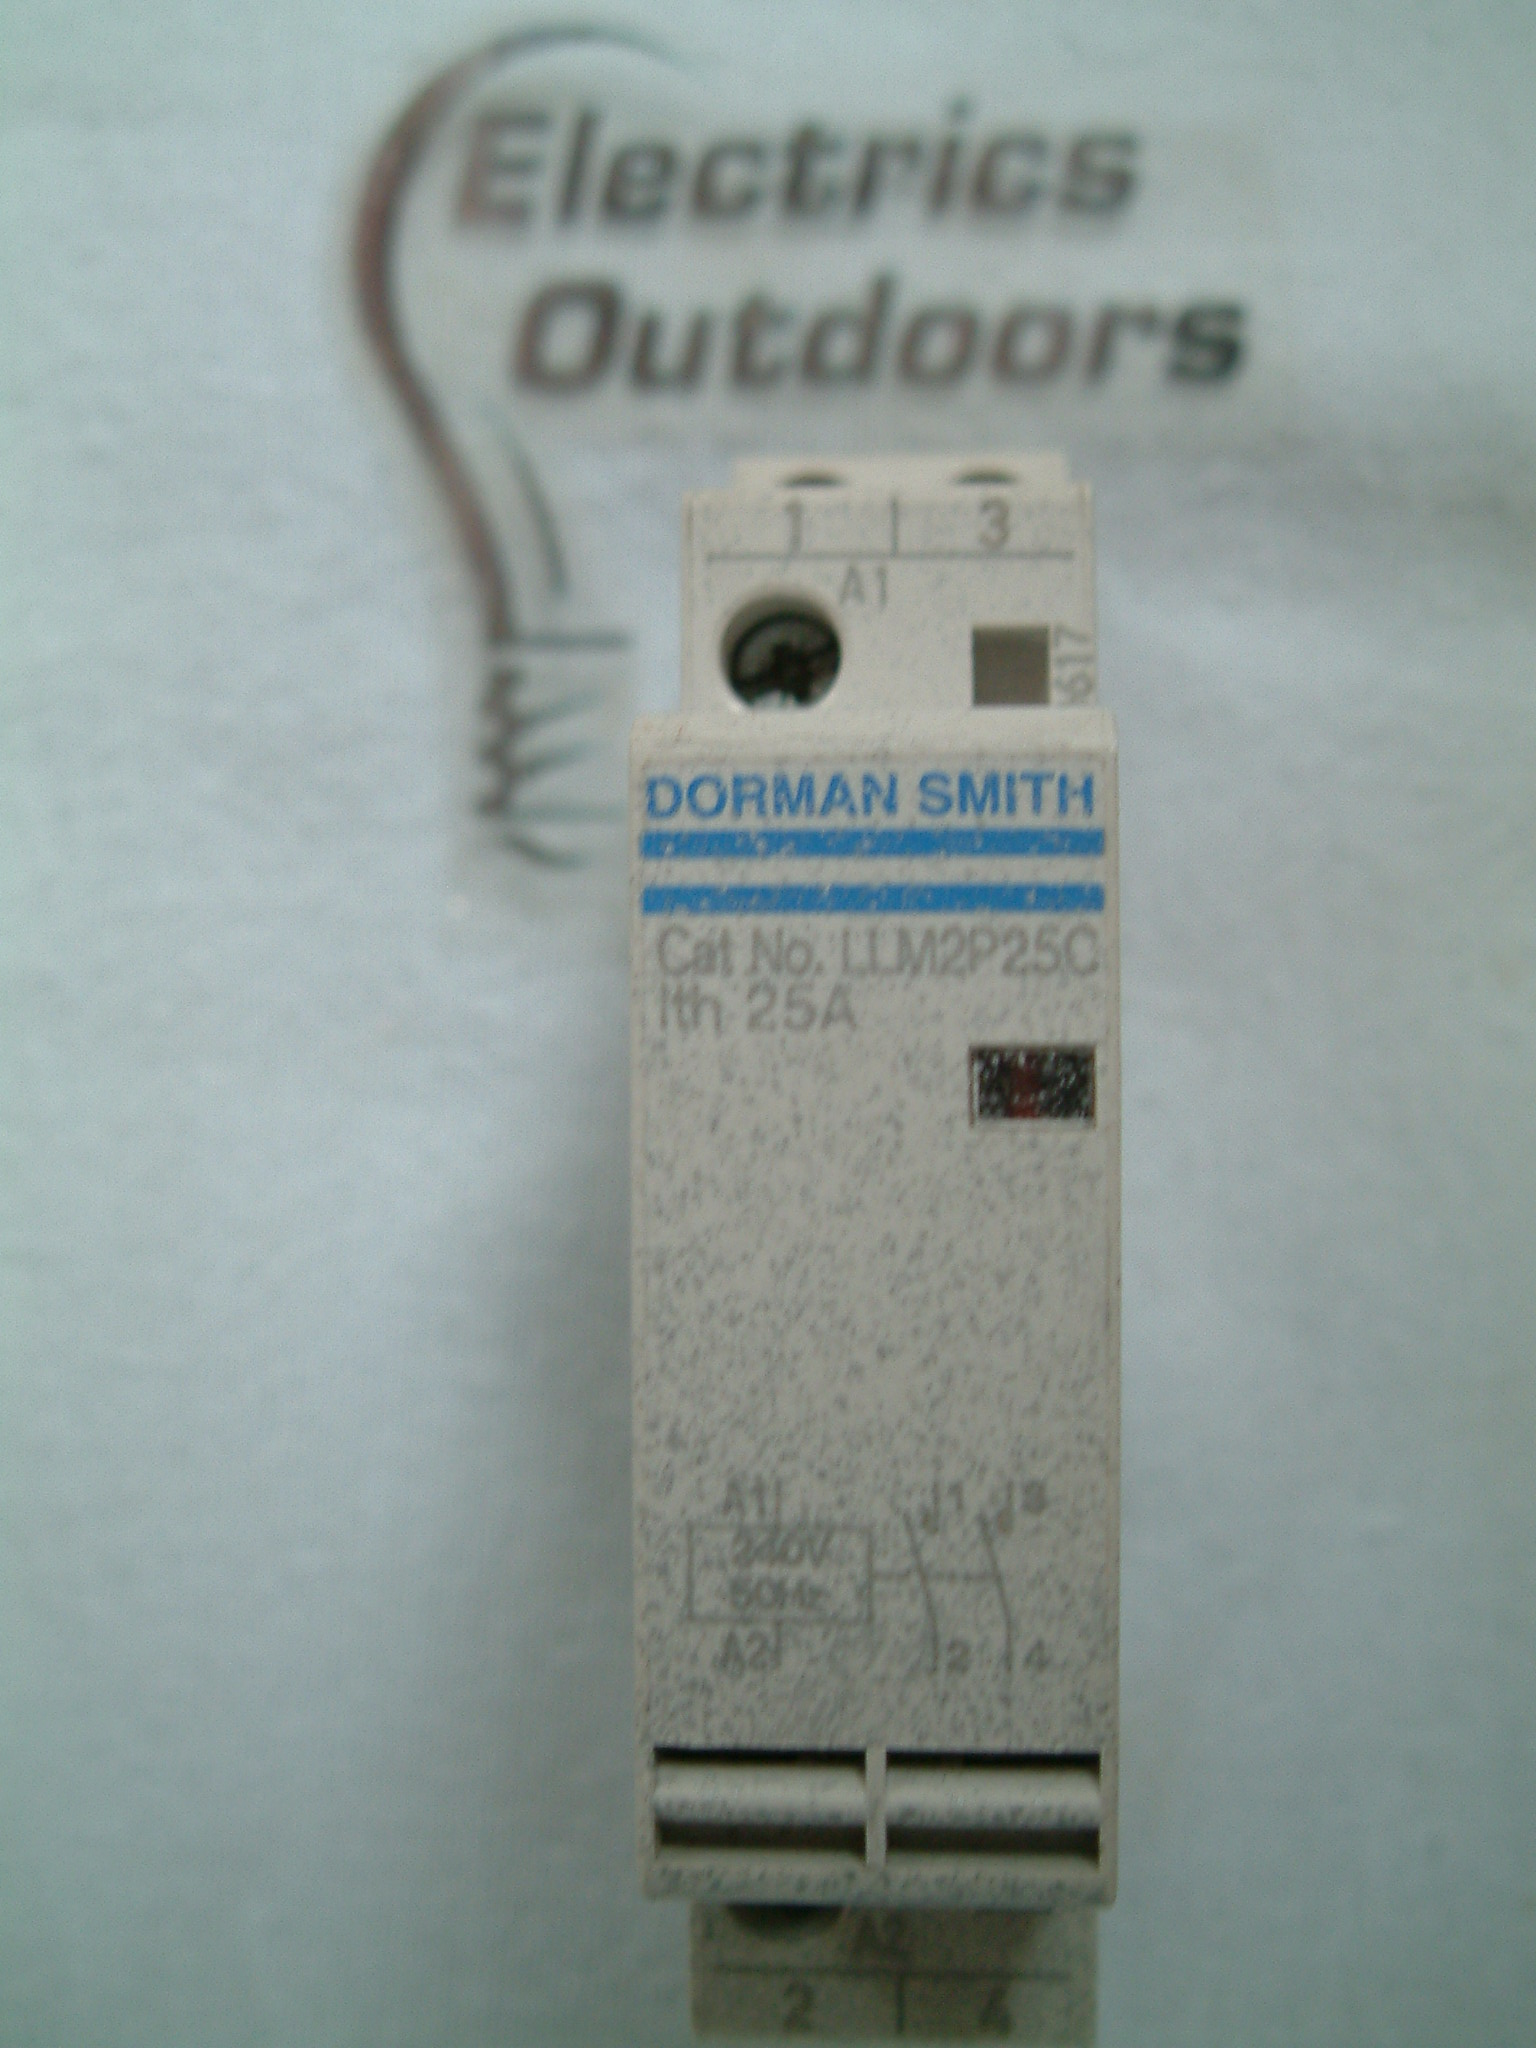 DORMAN SMITH 25 AMP 240V 50 Hz CONTACTOR DOUBLE 2 POLE AC7A LLM2